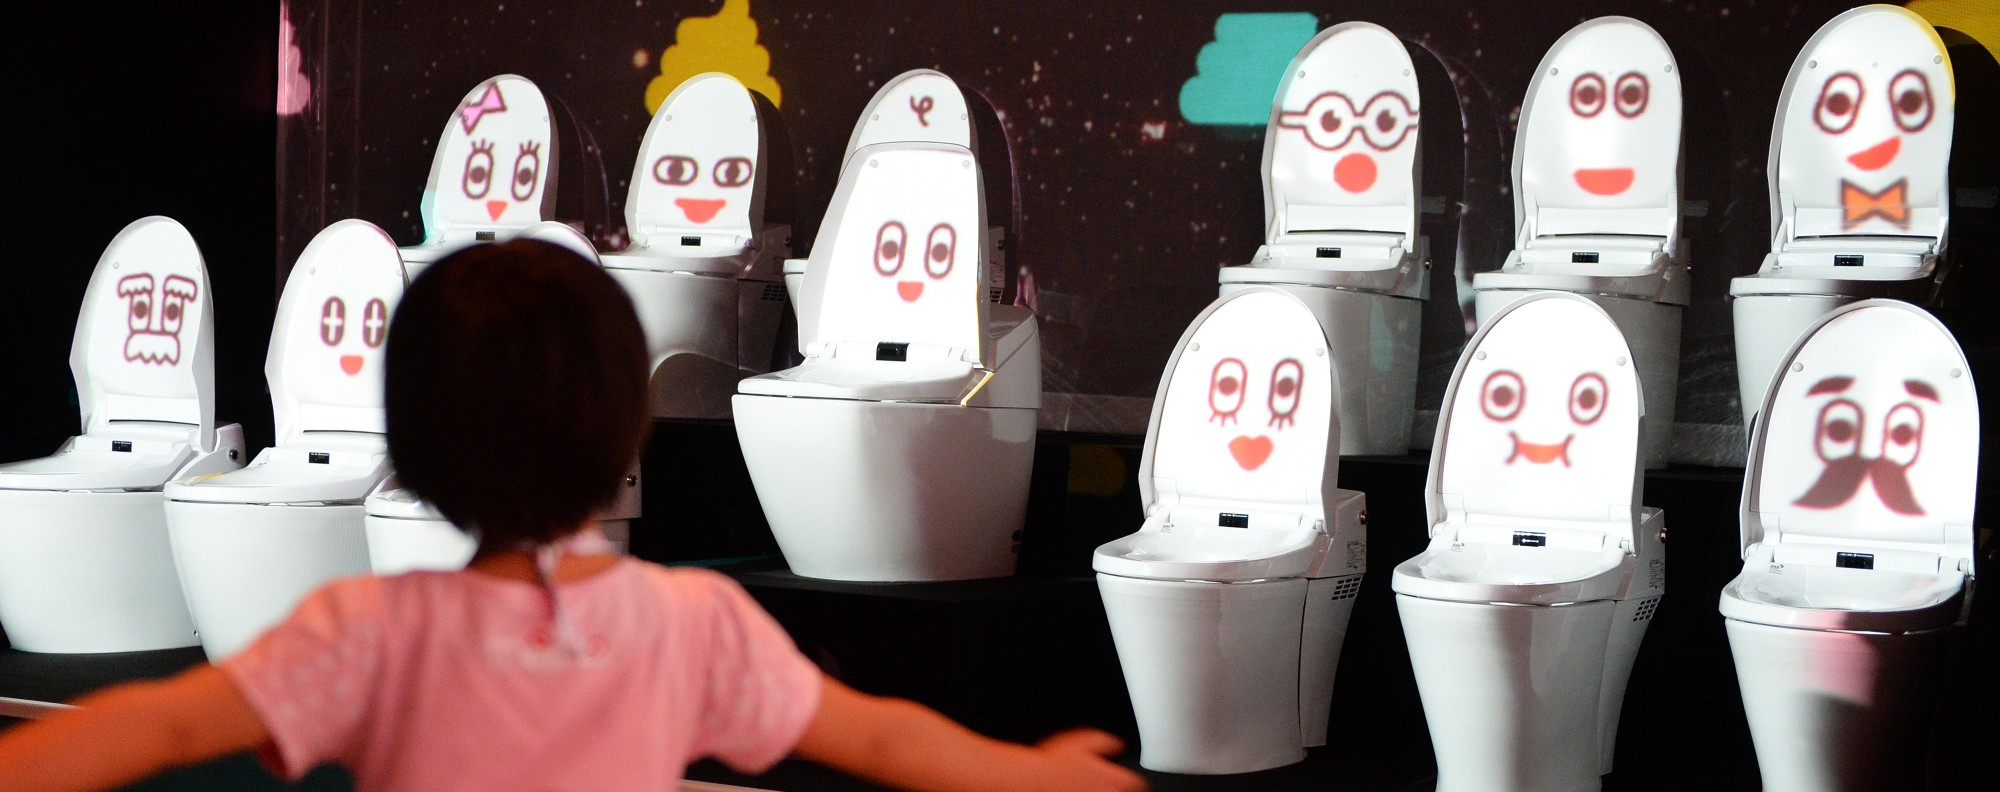 Olympic toilets: Japan sets gold standard, China a distant number 2 ...